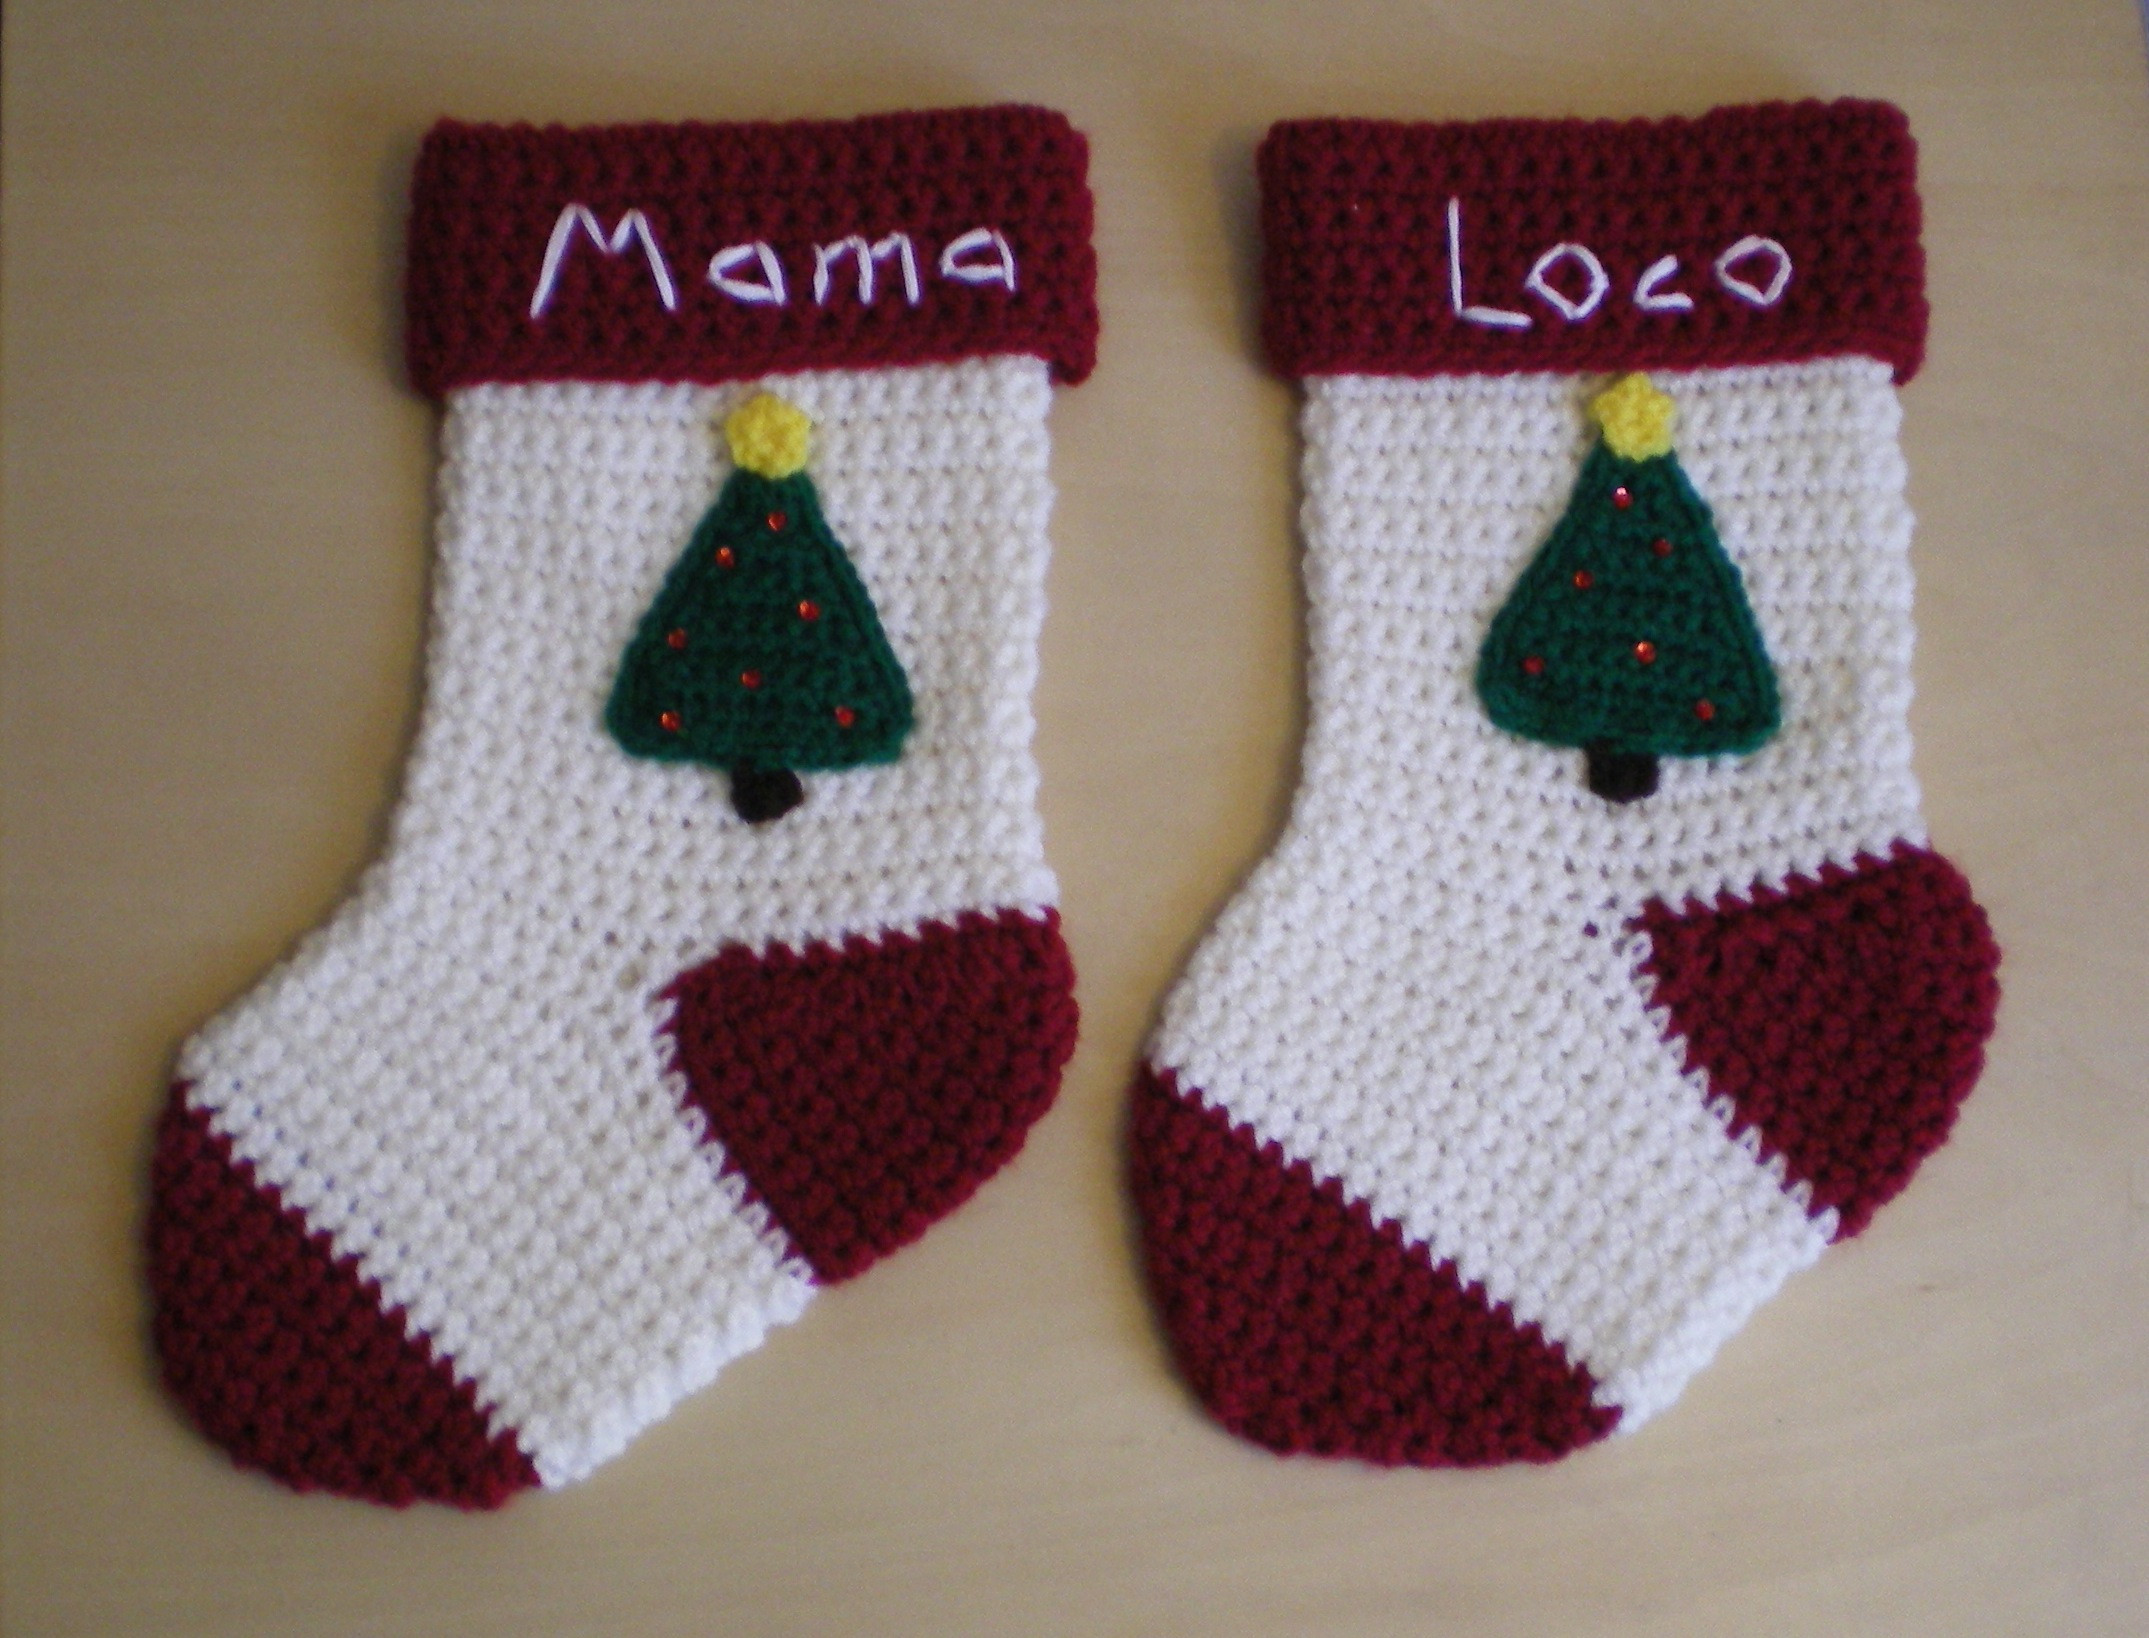 Lovely Christmas Stockings Crochet Pattern for Christmas Stocking Of Best Of Crochet Christmas Stockings B Hooked Crochet Crochet Pattern for Christmas Stocking